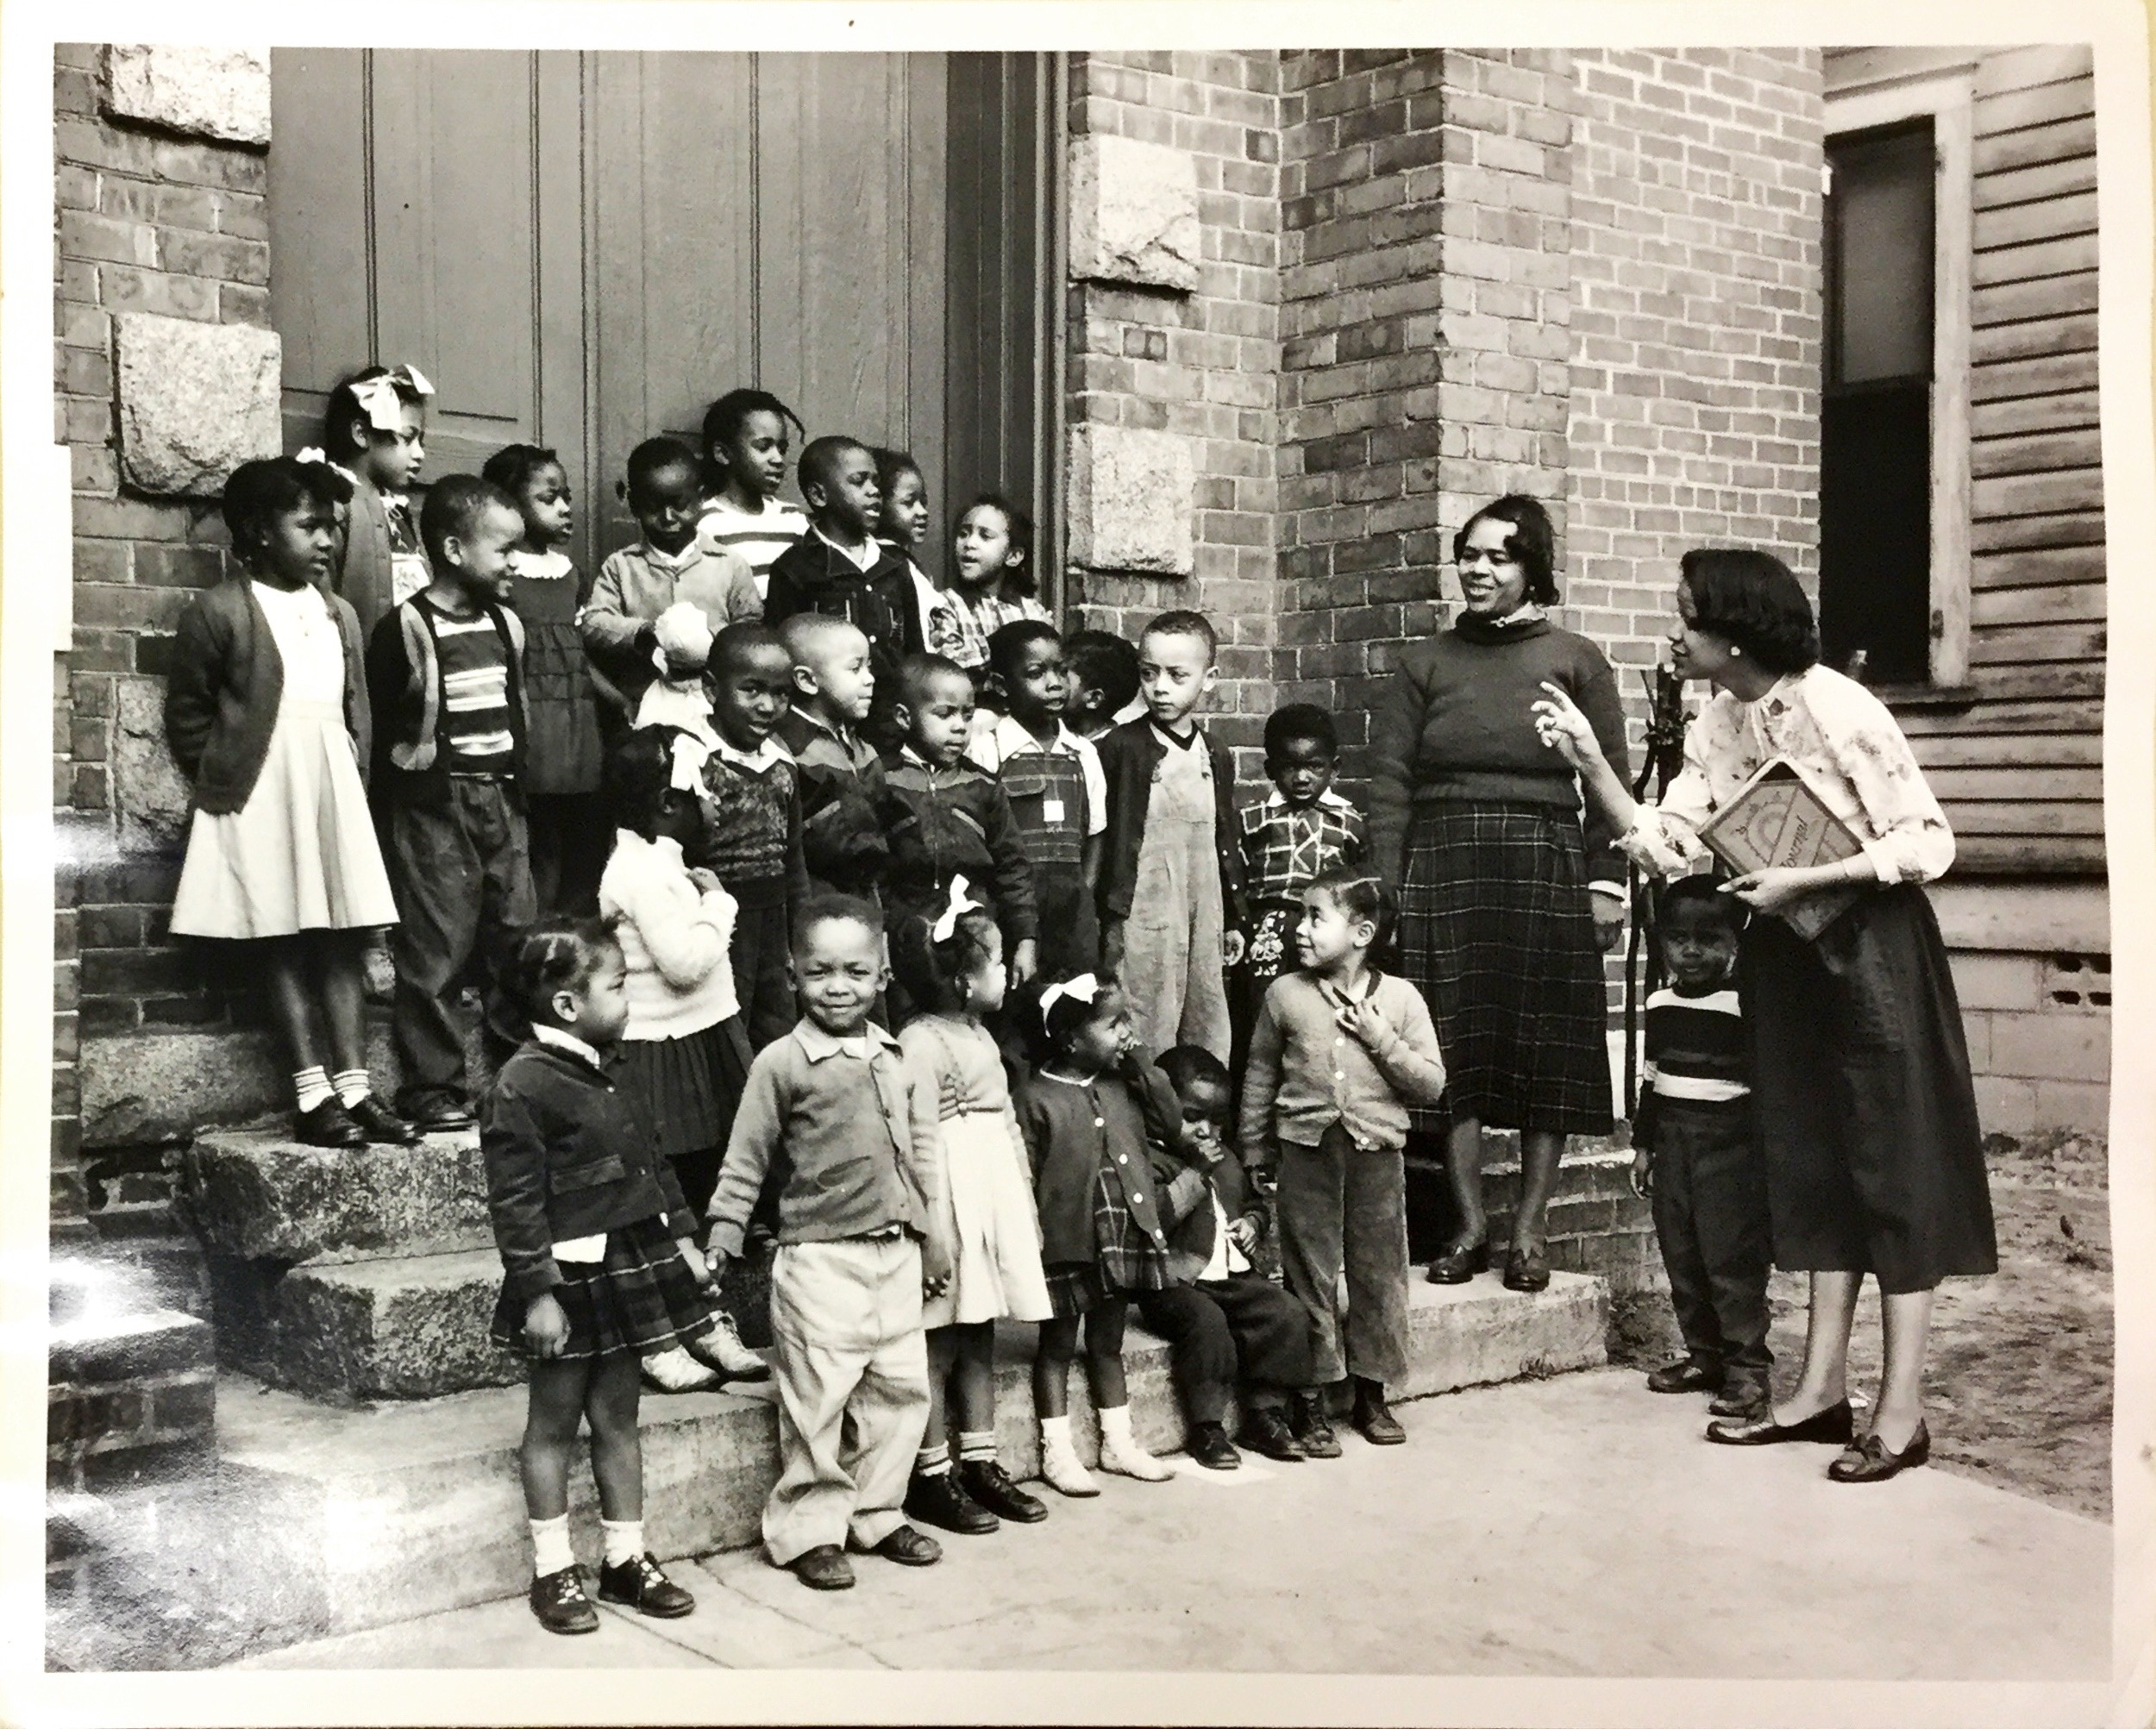 Mrs. Emily Ivory (widow of Cecil A. Ivory, superintendent of the nursery, leads the children of Hermon United Presbyterian Church in Rock Hill, S.C., in song. Cecil Ivory served the Hermon Church from 1949-1961, From congregational vertical file, RG425.